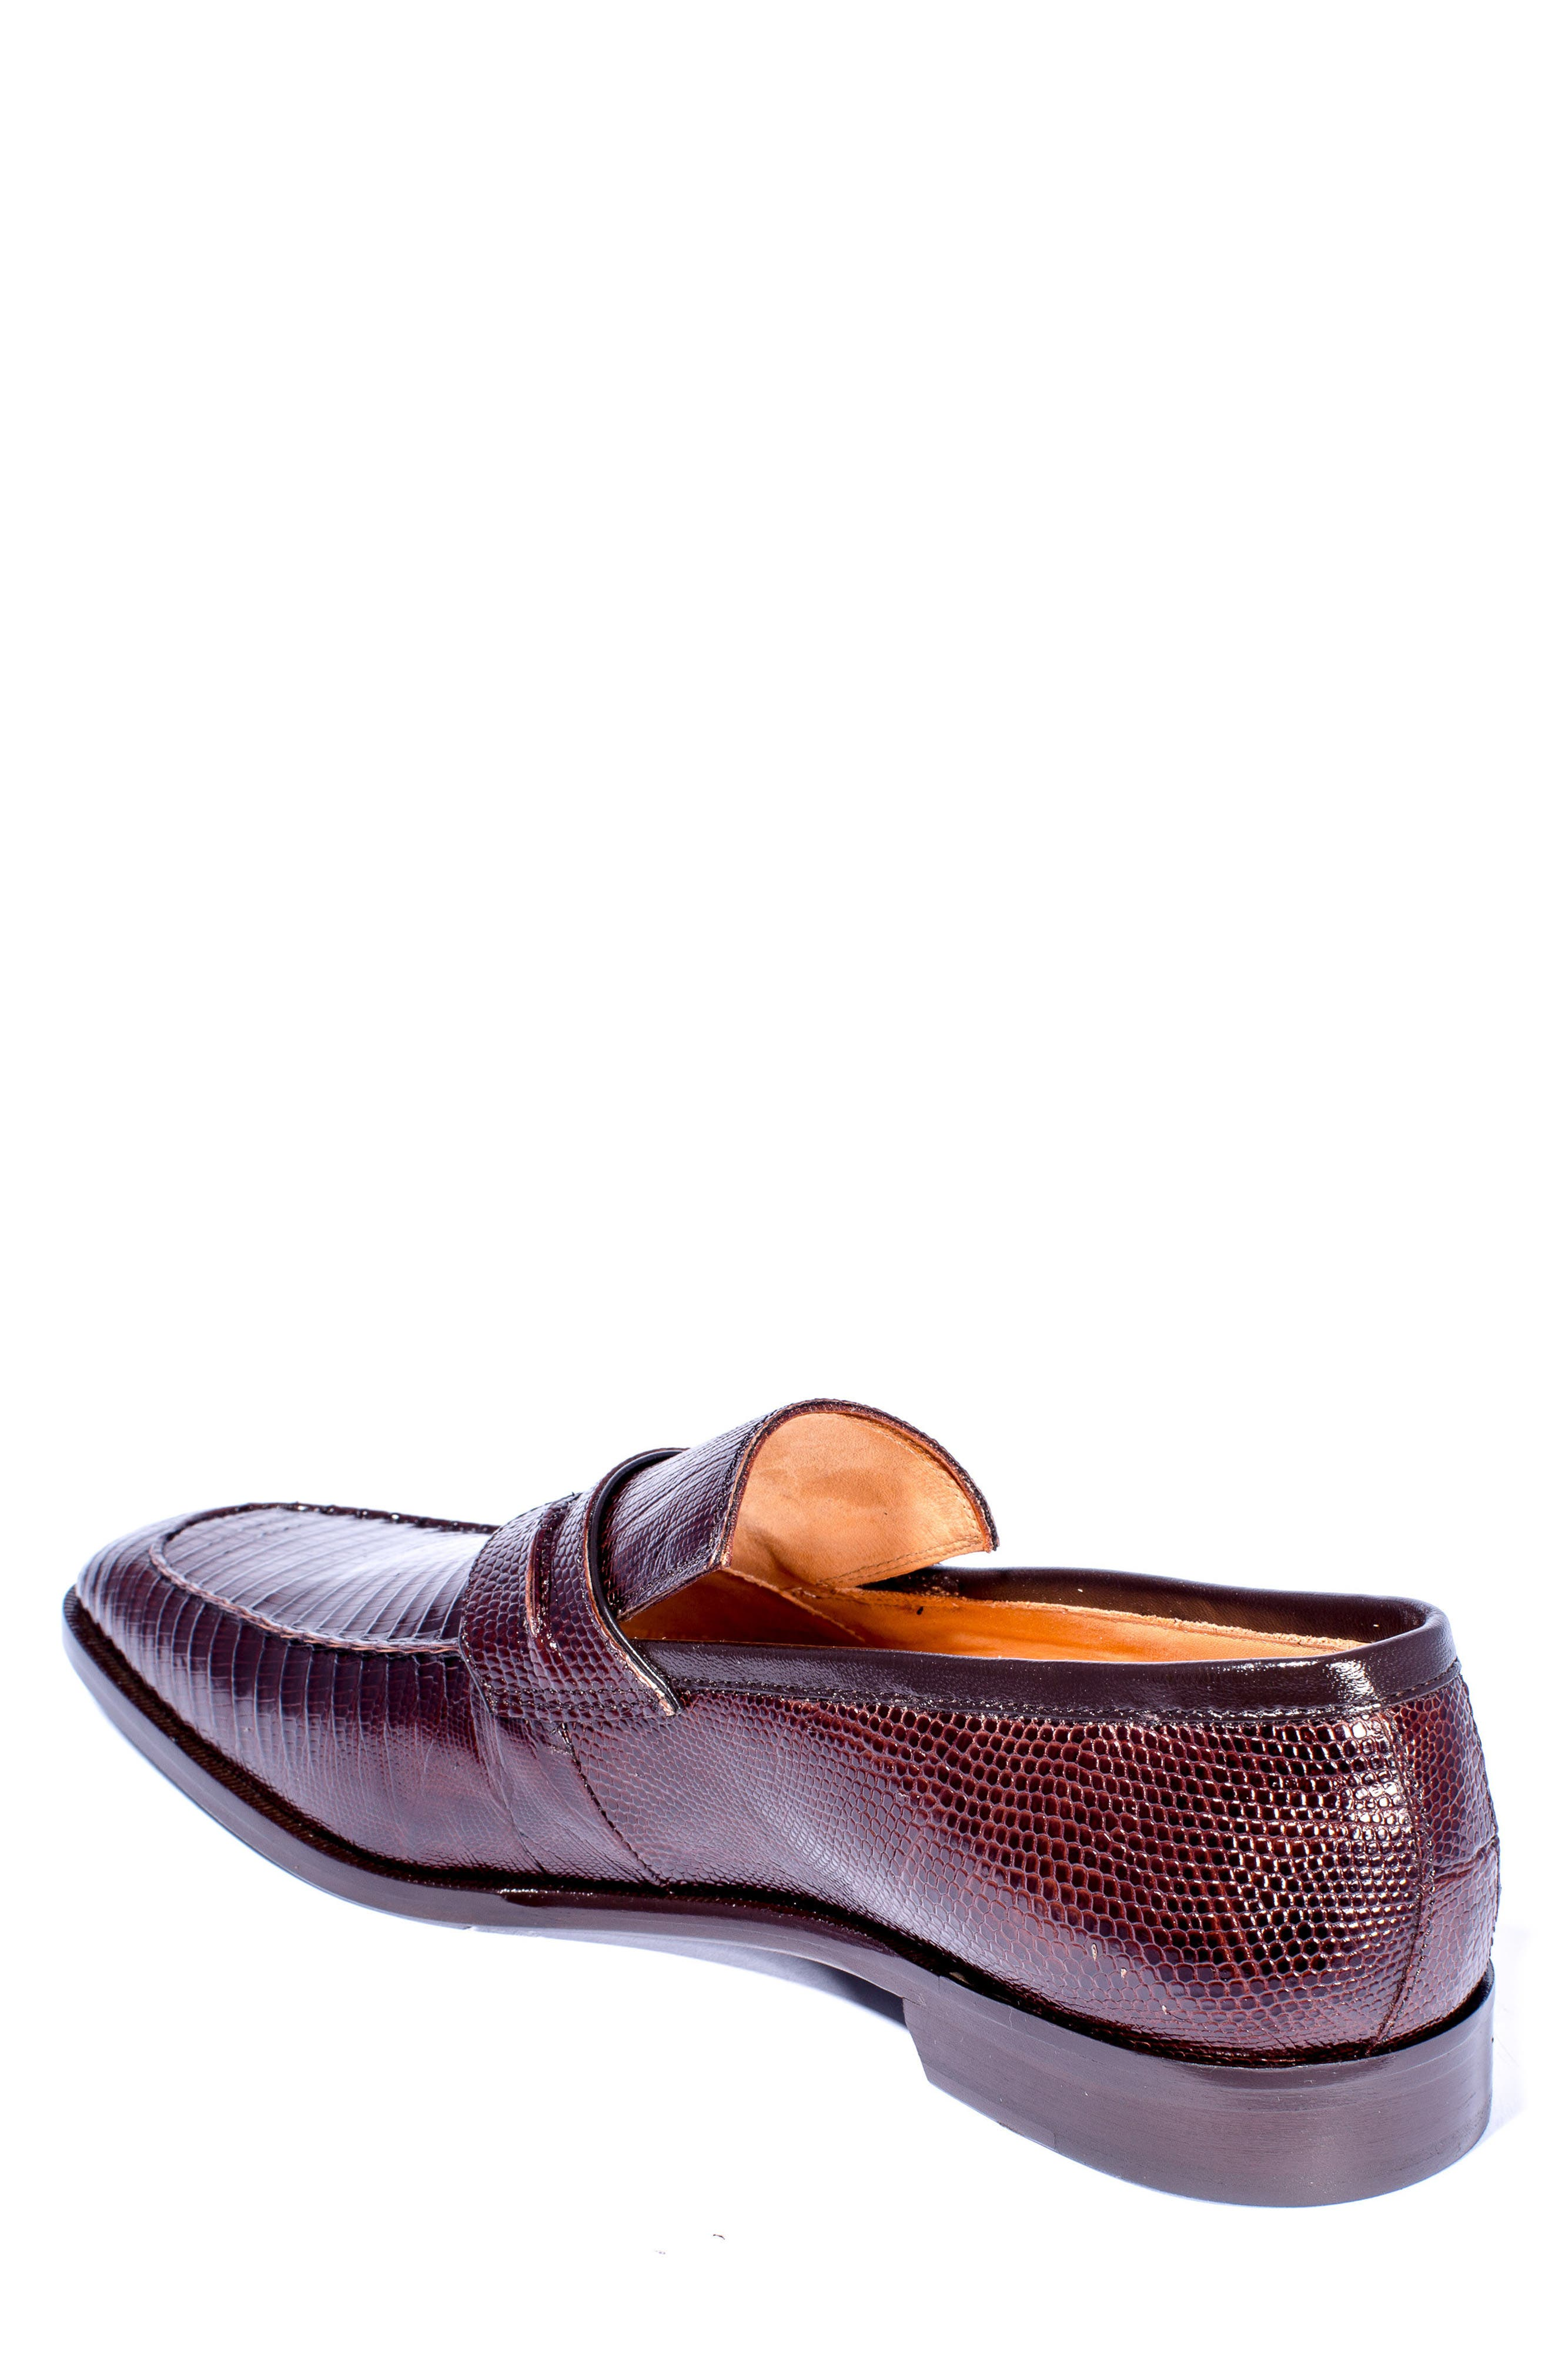 Meo Penny Loafer,                             Alternate thumbnail 2, color,                             Brown